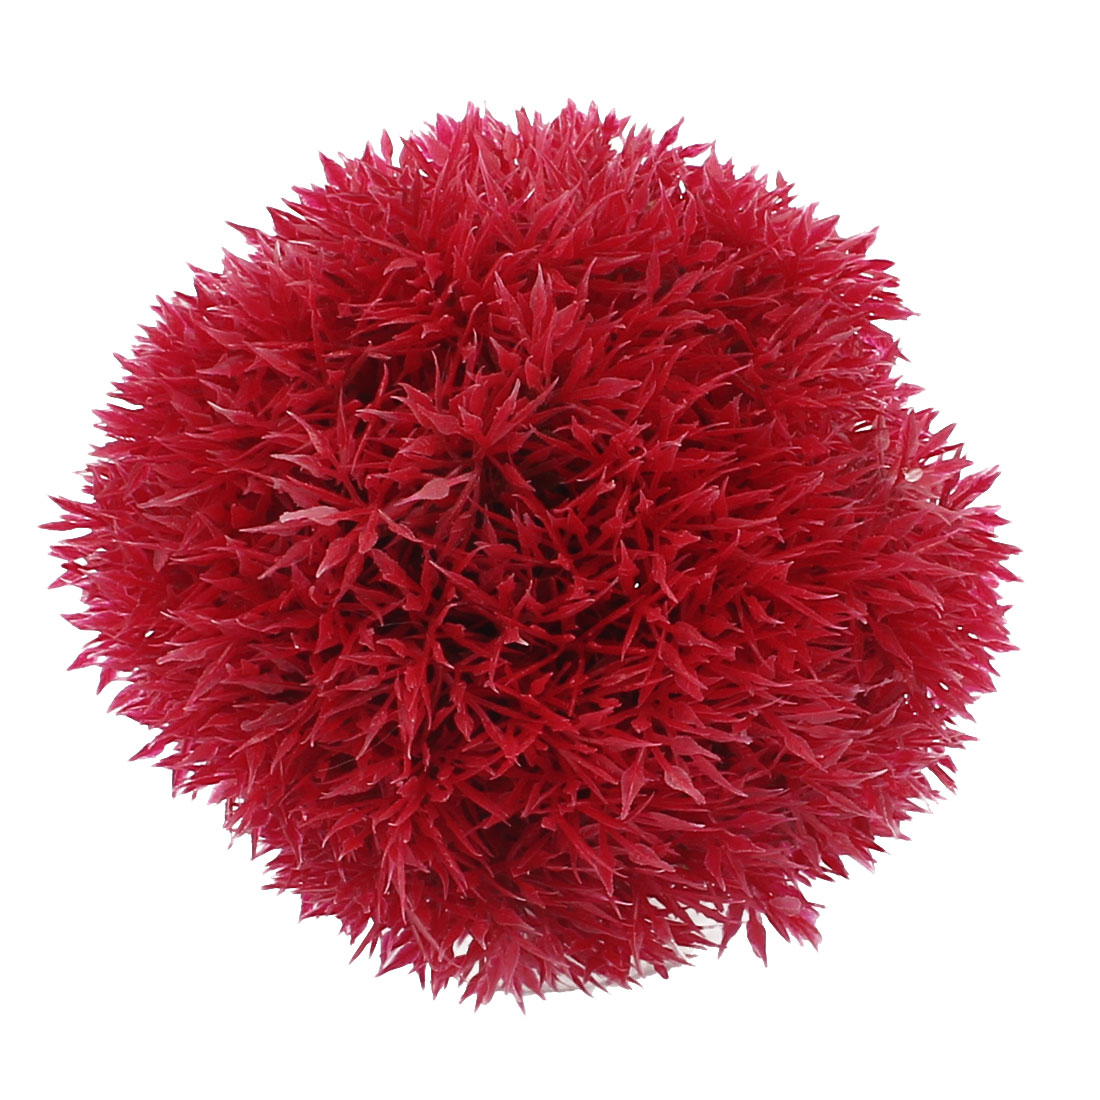 Plastic Grass Ball Design Aquatic Plant Fish Tank Aquarium Decor Red